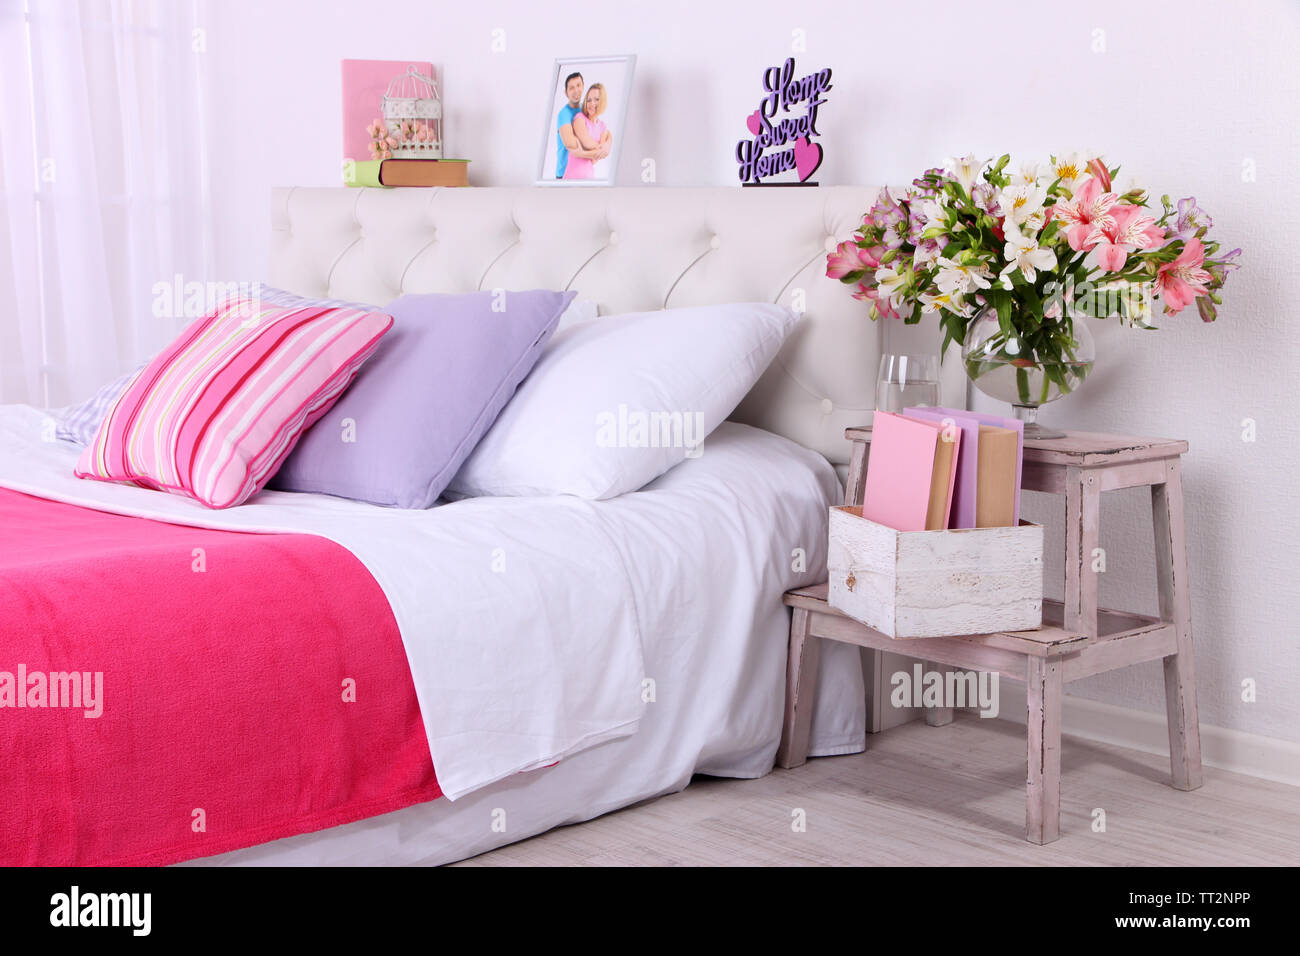 Comfortable soft bed in room - Stock Image